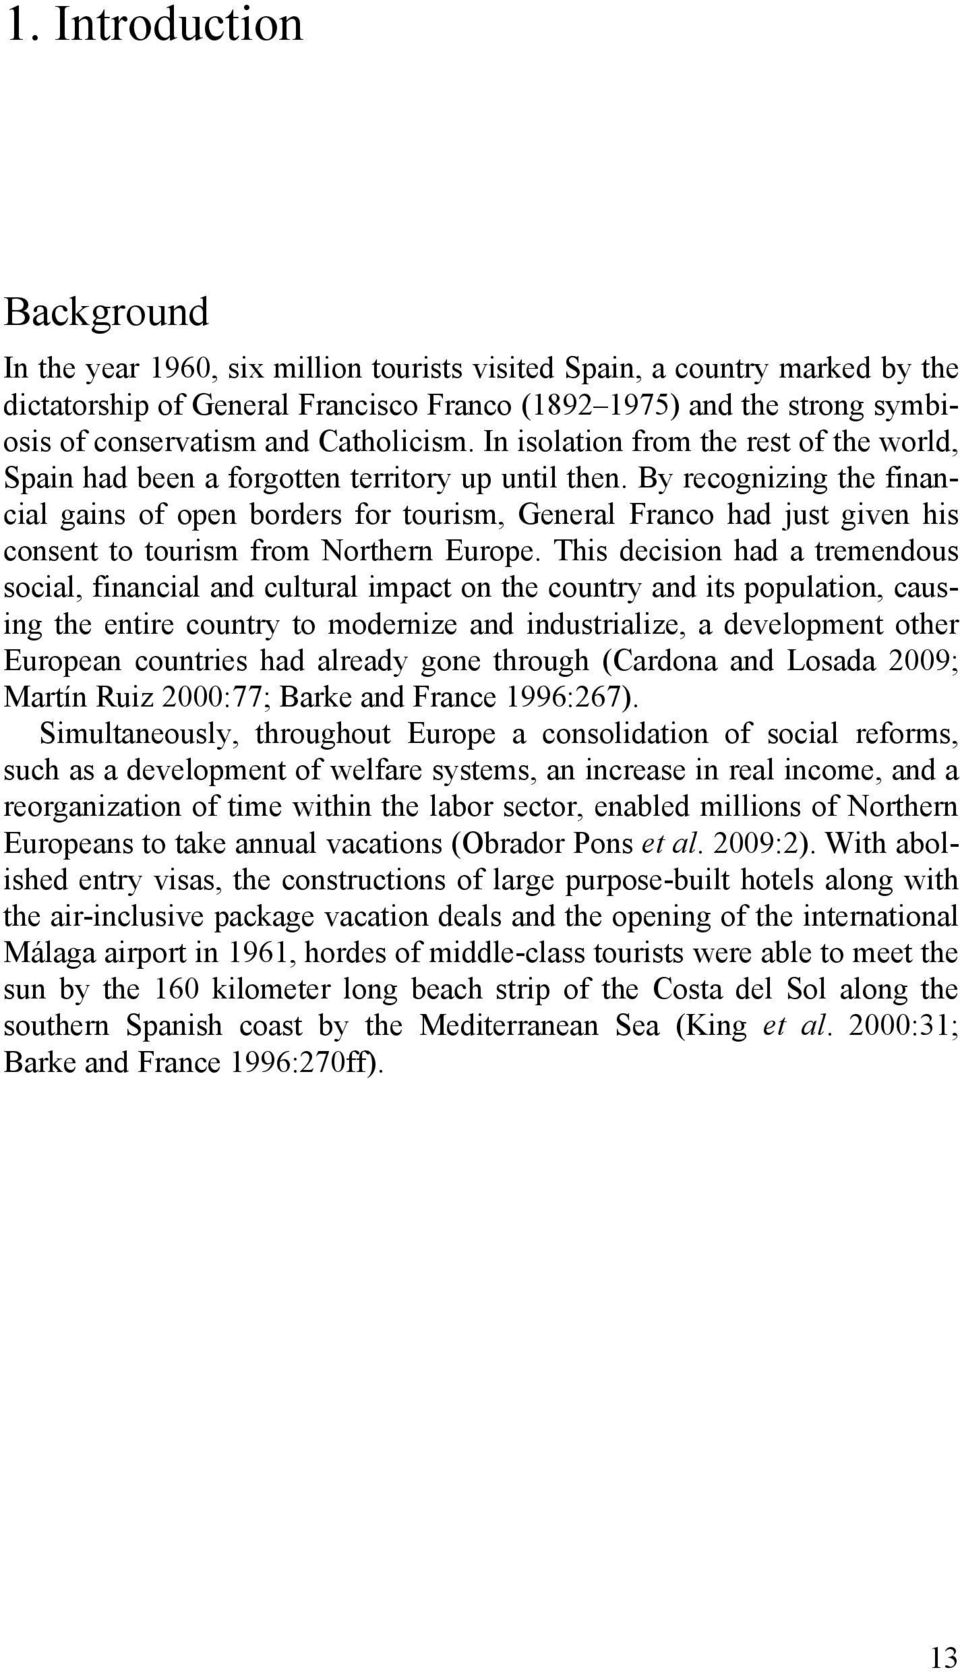 By recognizing the financial gains of open borders for tourism, General Franco had just given his consent to tourism from Northern Europe.